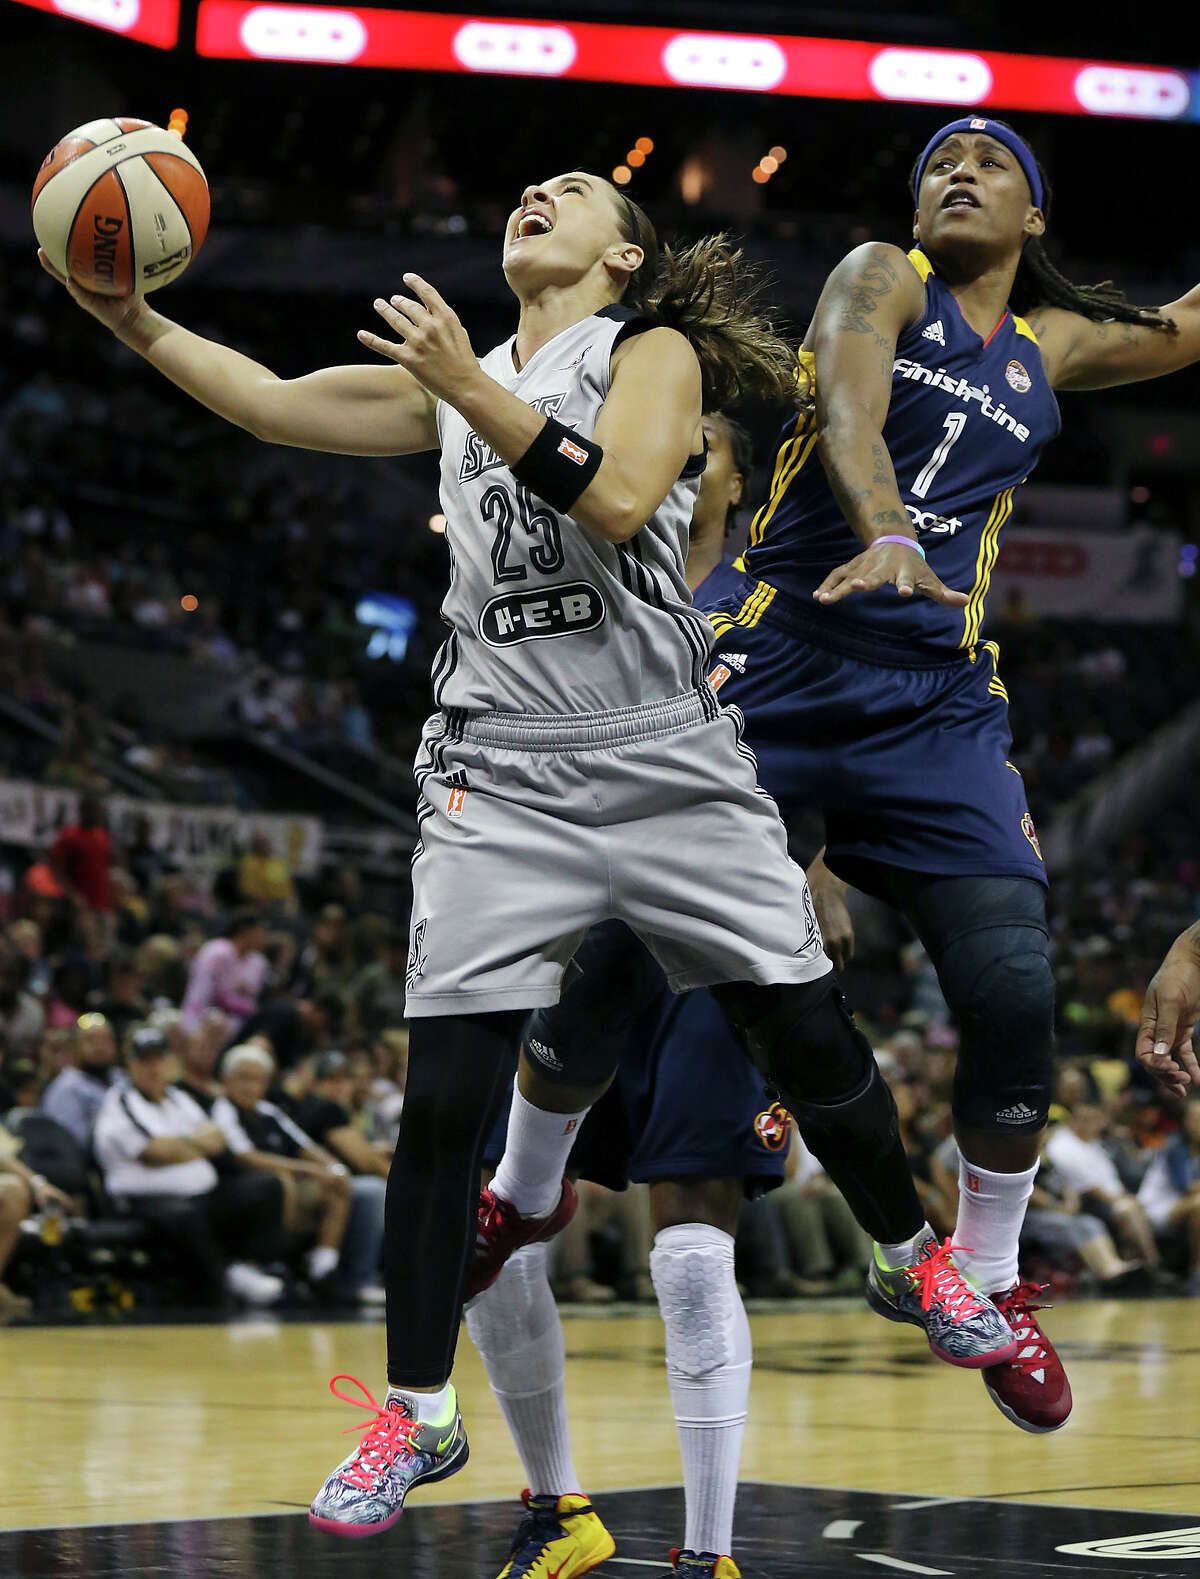 2. Hammon is a longtime standout player for the San Antonio Stars and was named one of the Top 15 Players in WNBA history in 2011.